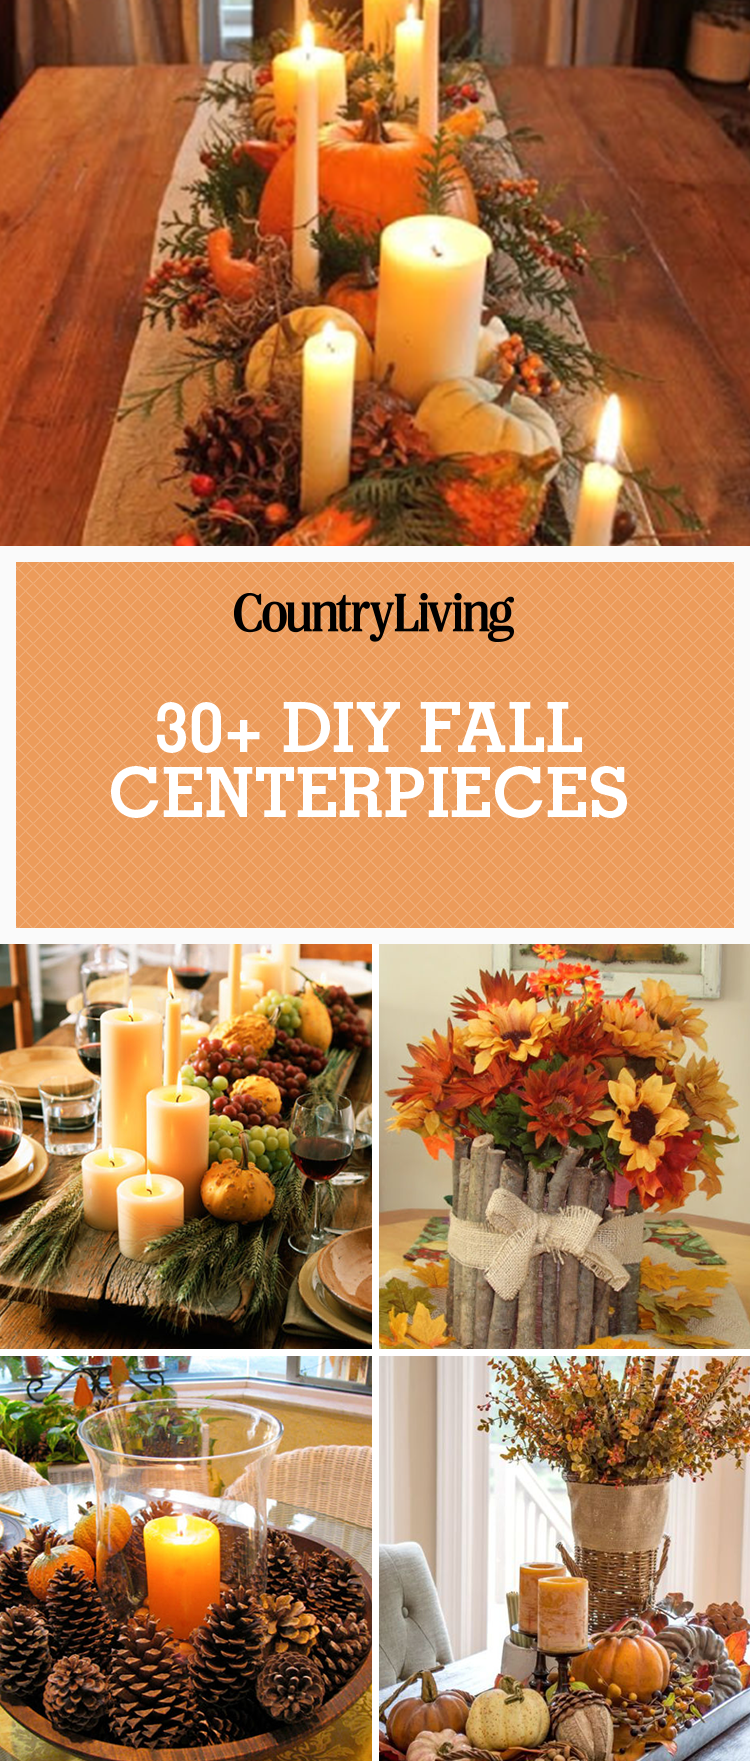 38 beautiful fall centerpieces you can make yourself country 38 beautiful fall centerpieces you can make yourself junglespirit